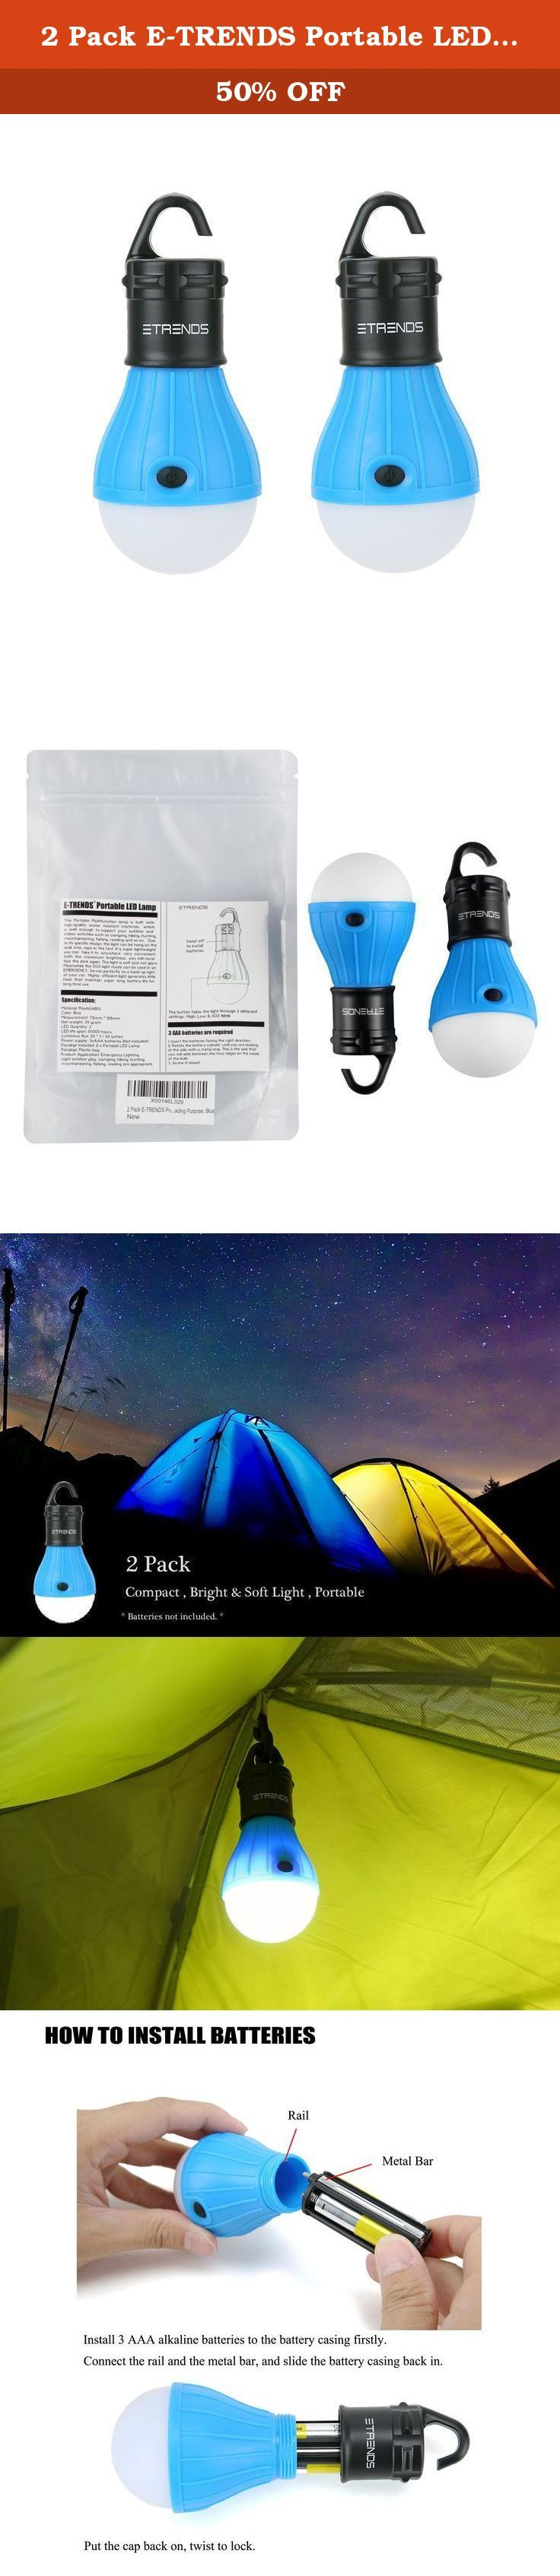 2 Pack E-TRENDS Portable LED Lantern Light Bulb for Camping Hiking Night Fishing Emergency Light, Battery Powered for Outdoor & Indoor, Not for Reading Purpose, Blue. Built with superior, high-quality materials that are safe and reliable to help provide maximum durability and water resistance whenever or wherever you go. The innovative and convenient hanging hook design is equipped with a sturdy housing to support all your outdoor and indoor activities such as camping, hiking, hunting...